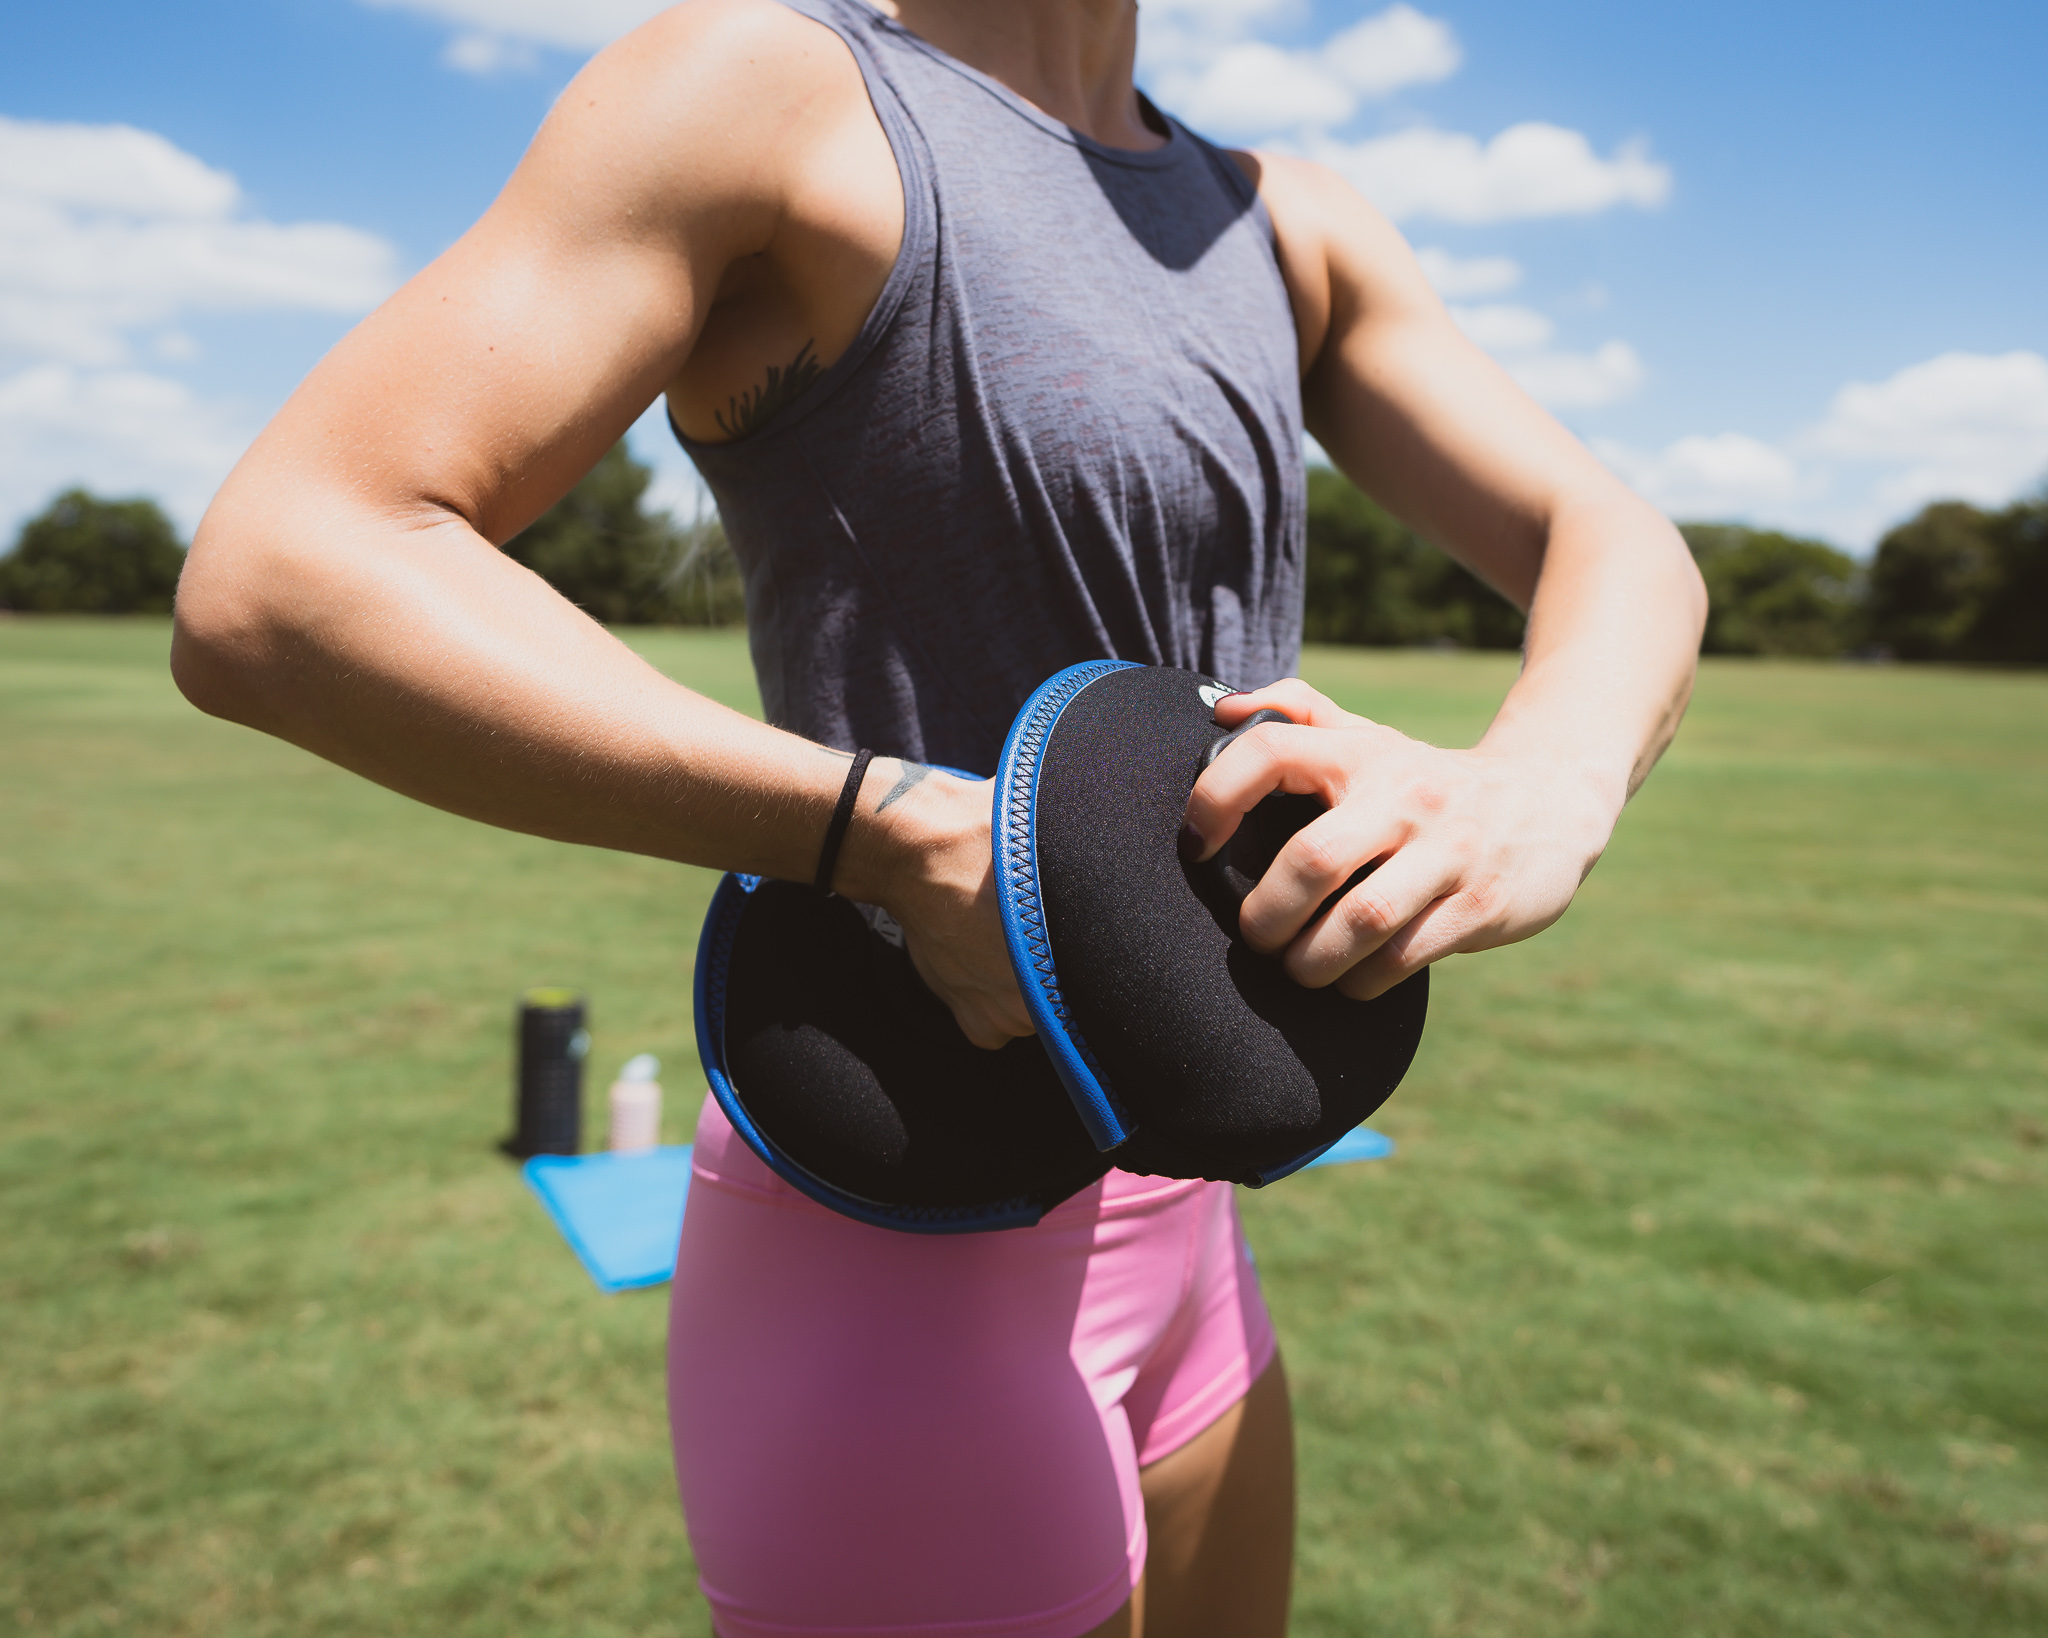 Myth Busted: Lifting Weights Makes Women Bulky